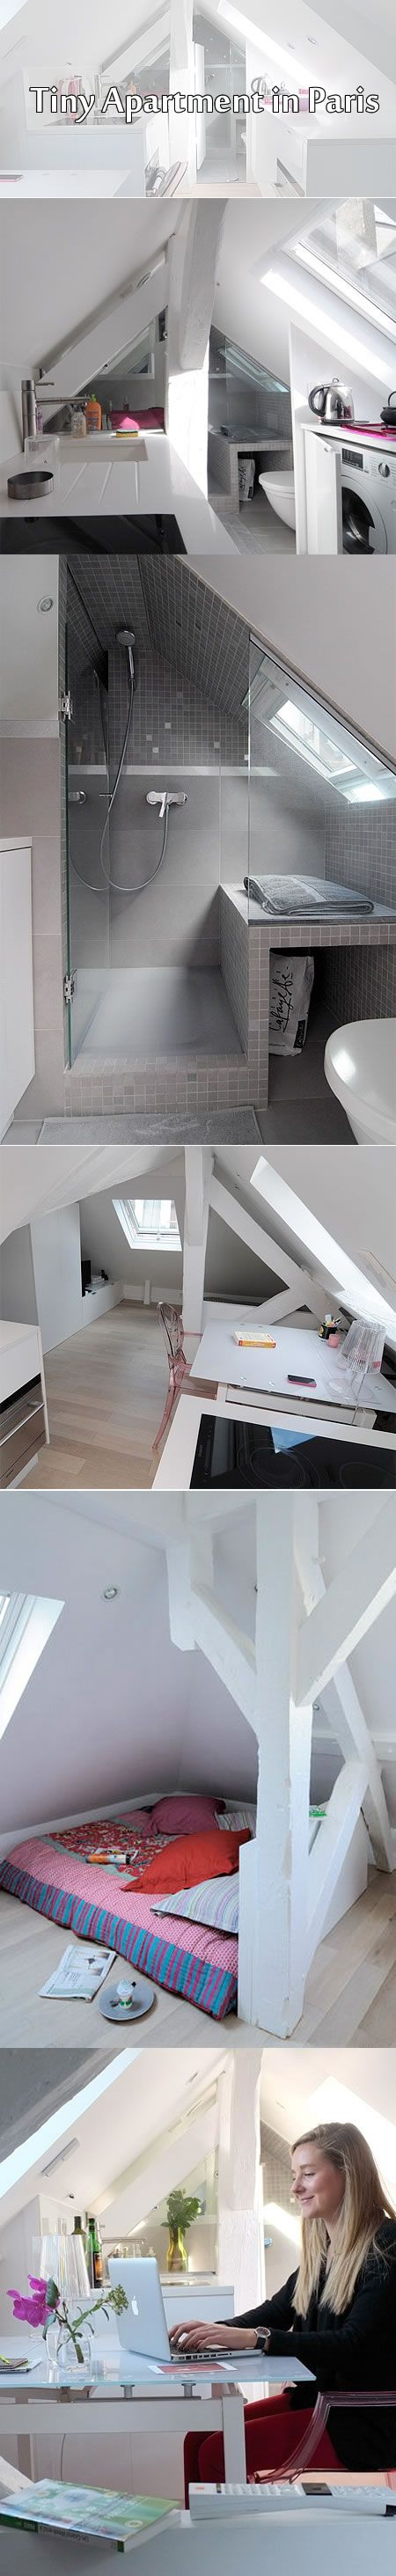 I like the shower..Tiny studio apartment in Paris. Compact living. White. Attic apartment. Scandinavian style.